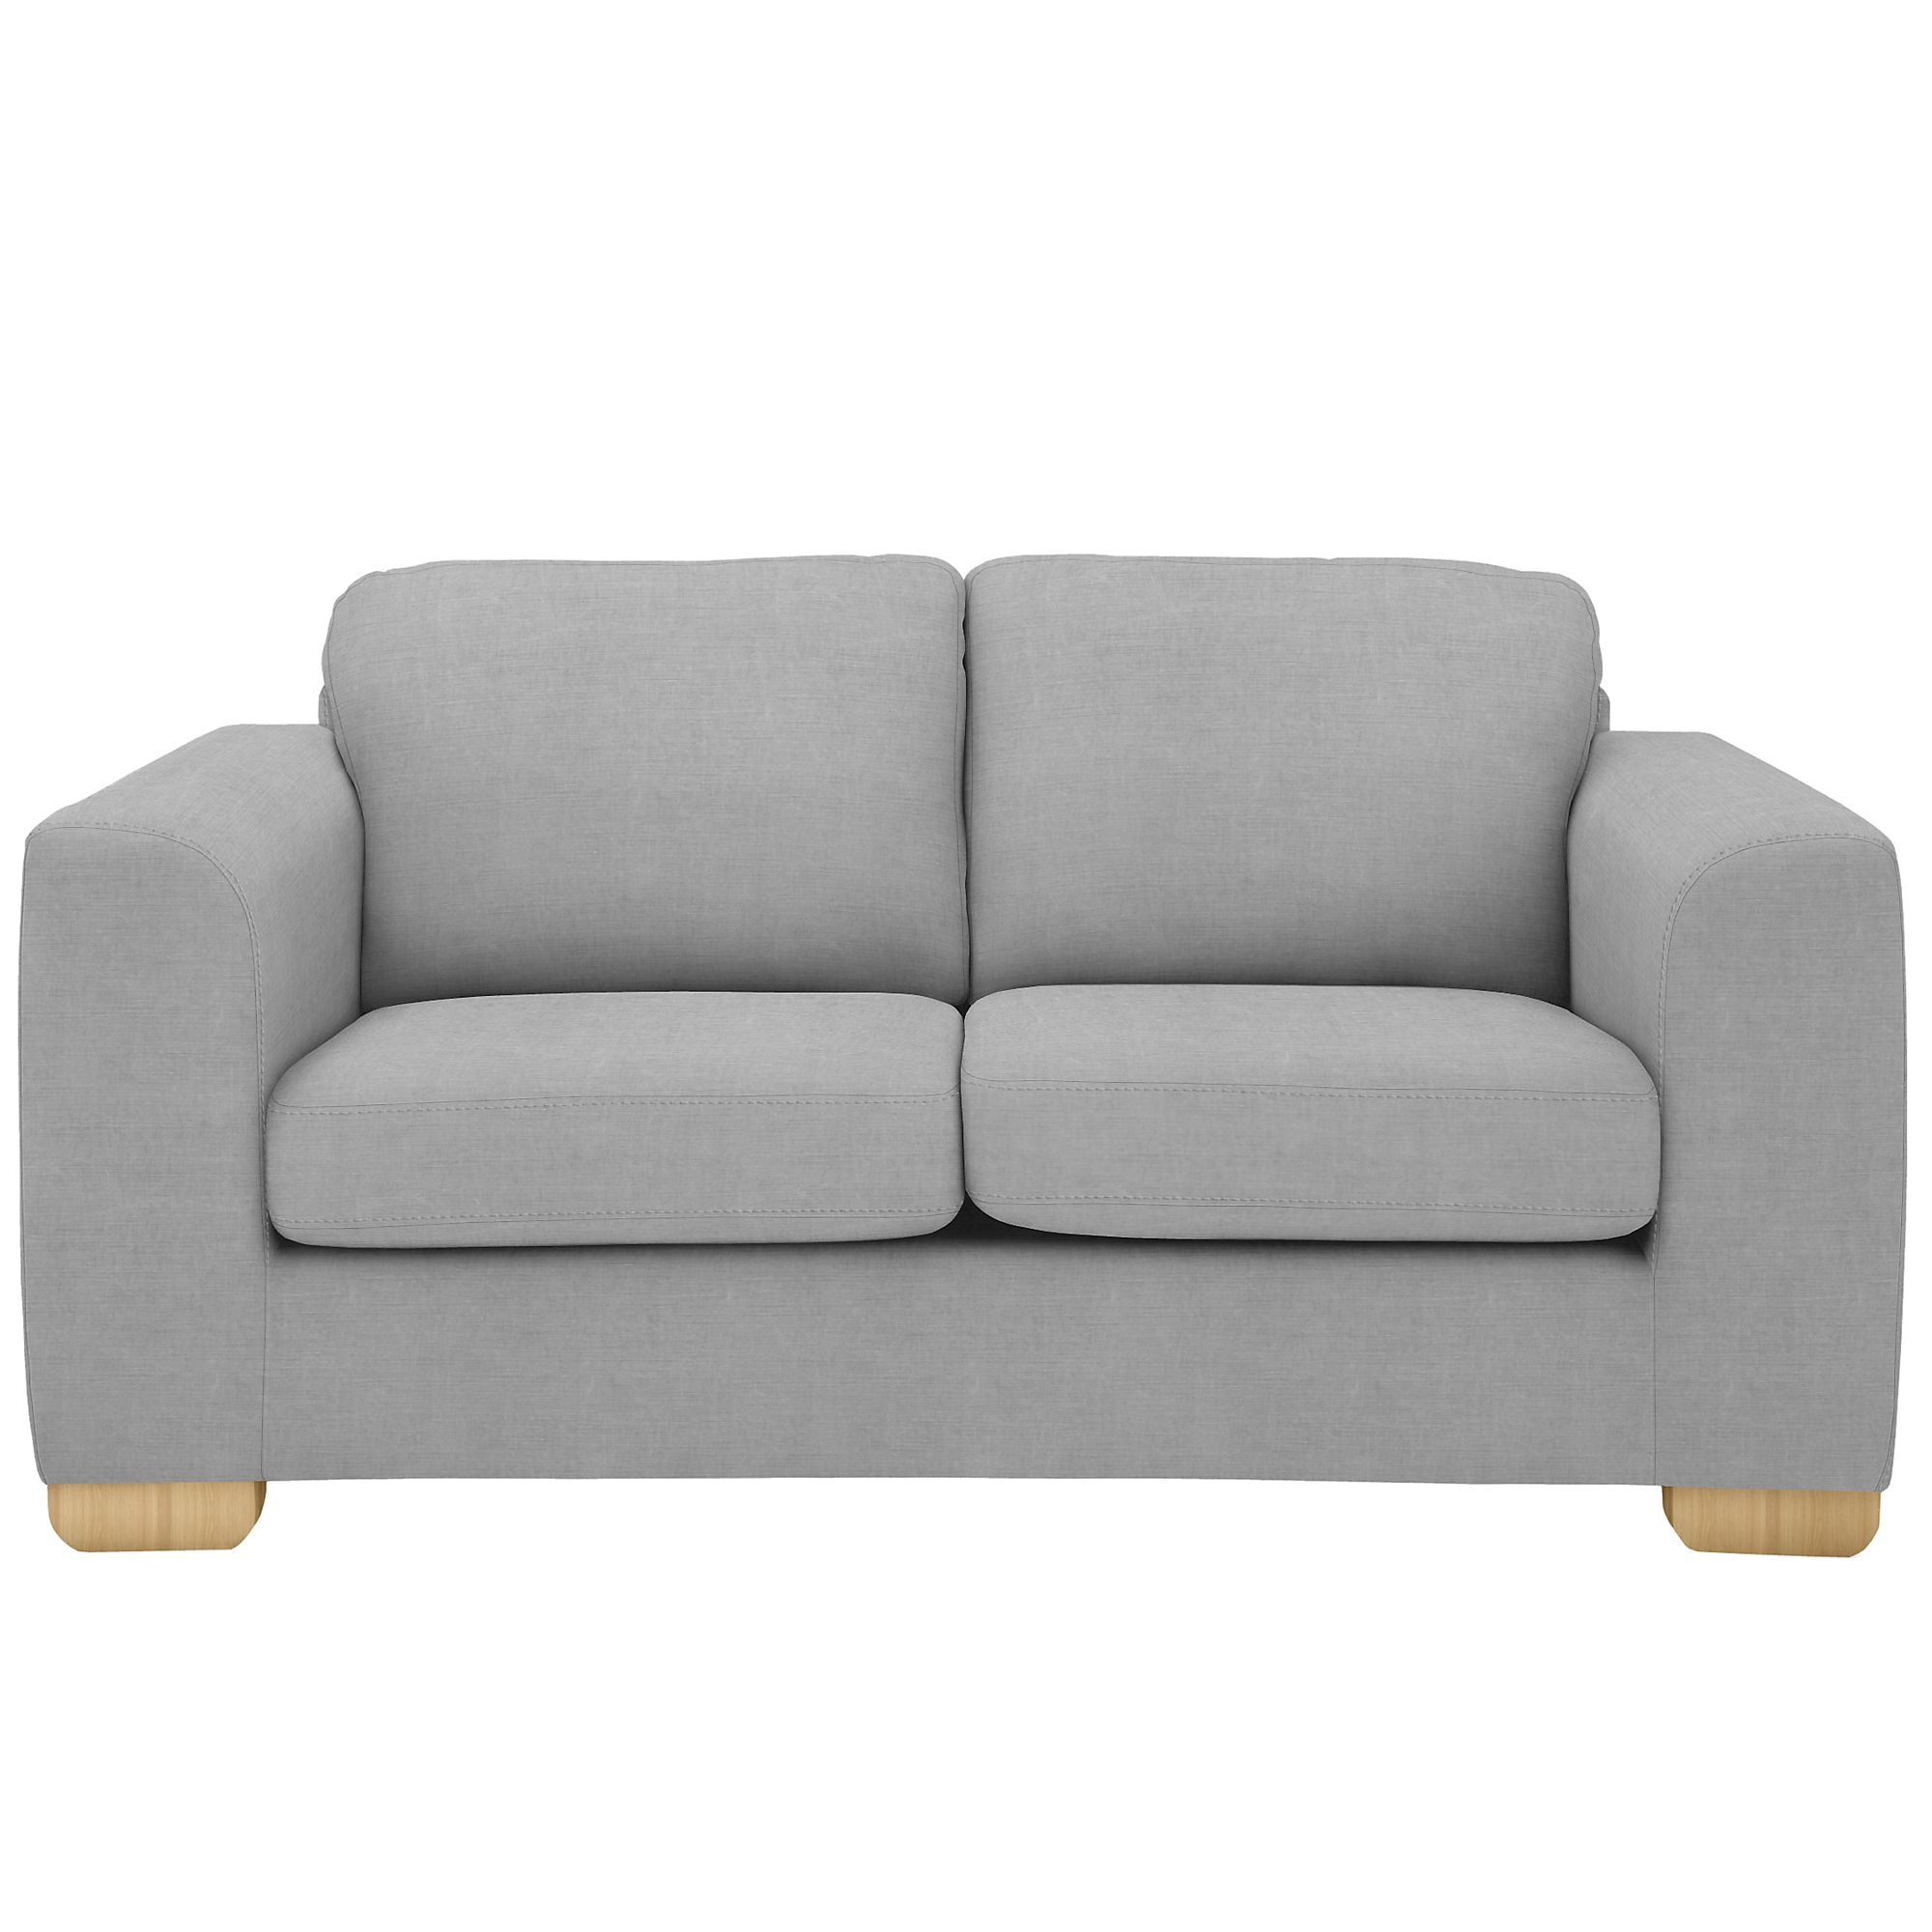 John Lewis Sofa Shop For Cheap Living Room And Save Online